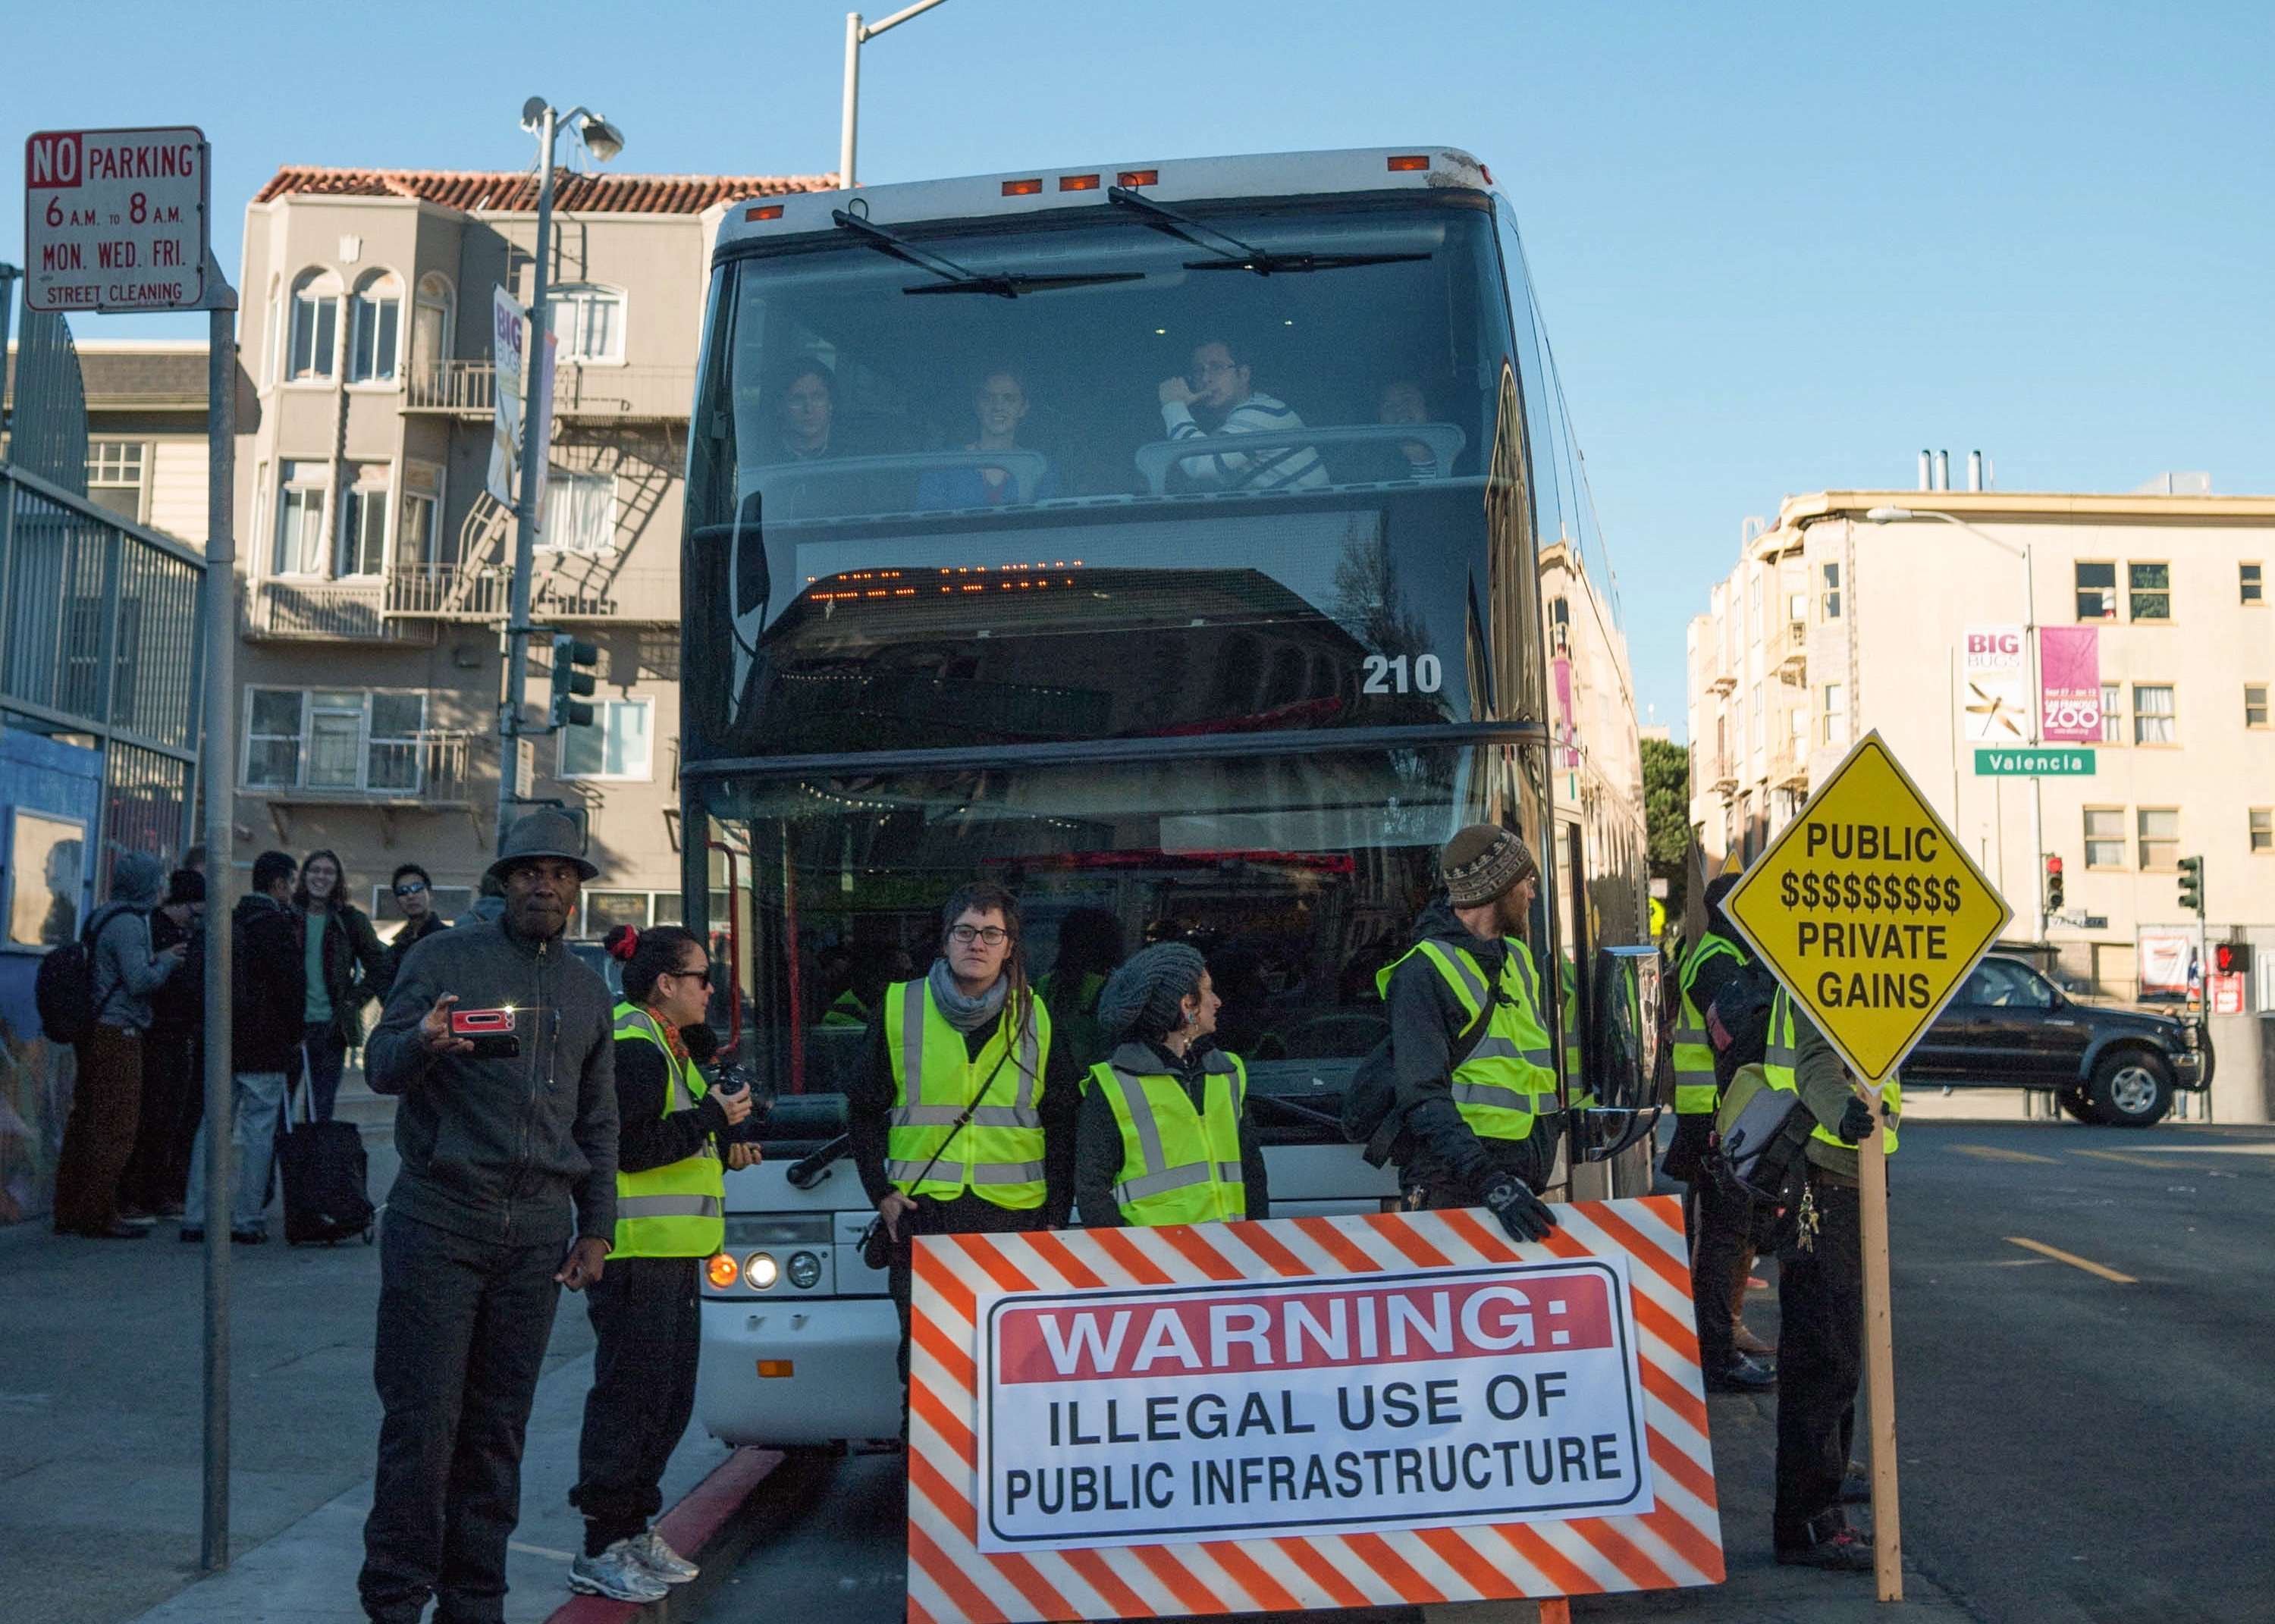 Tech bus protest, San Francisco, California, 2013. Explosive growth in the tech sector coupled with insufficient housing developments has led to increased living expenses in many Bay Area neighborhoods, displacing longtime residents. In December 2013 San Francisco residents protested against the buses used to shuttle employees to Oakland and Silicon Valley companies like Google, Apple, Yahoo!, and Facebook. As the Valley and the entire San Francisco Bay Area finds itself a symbol for all that is good and bad about technology, while facing its own societal issues as a result of the region's tech boom, some are questioning whether its state of mind is one that should be emulated. Credit: By Chris Martin